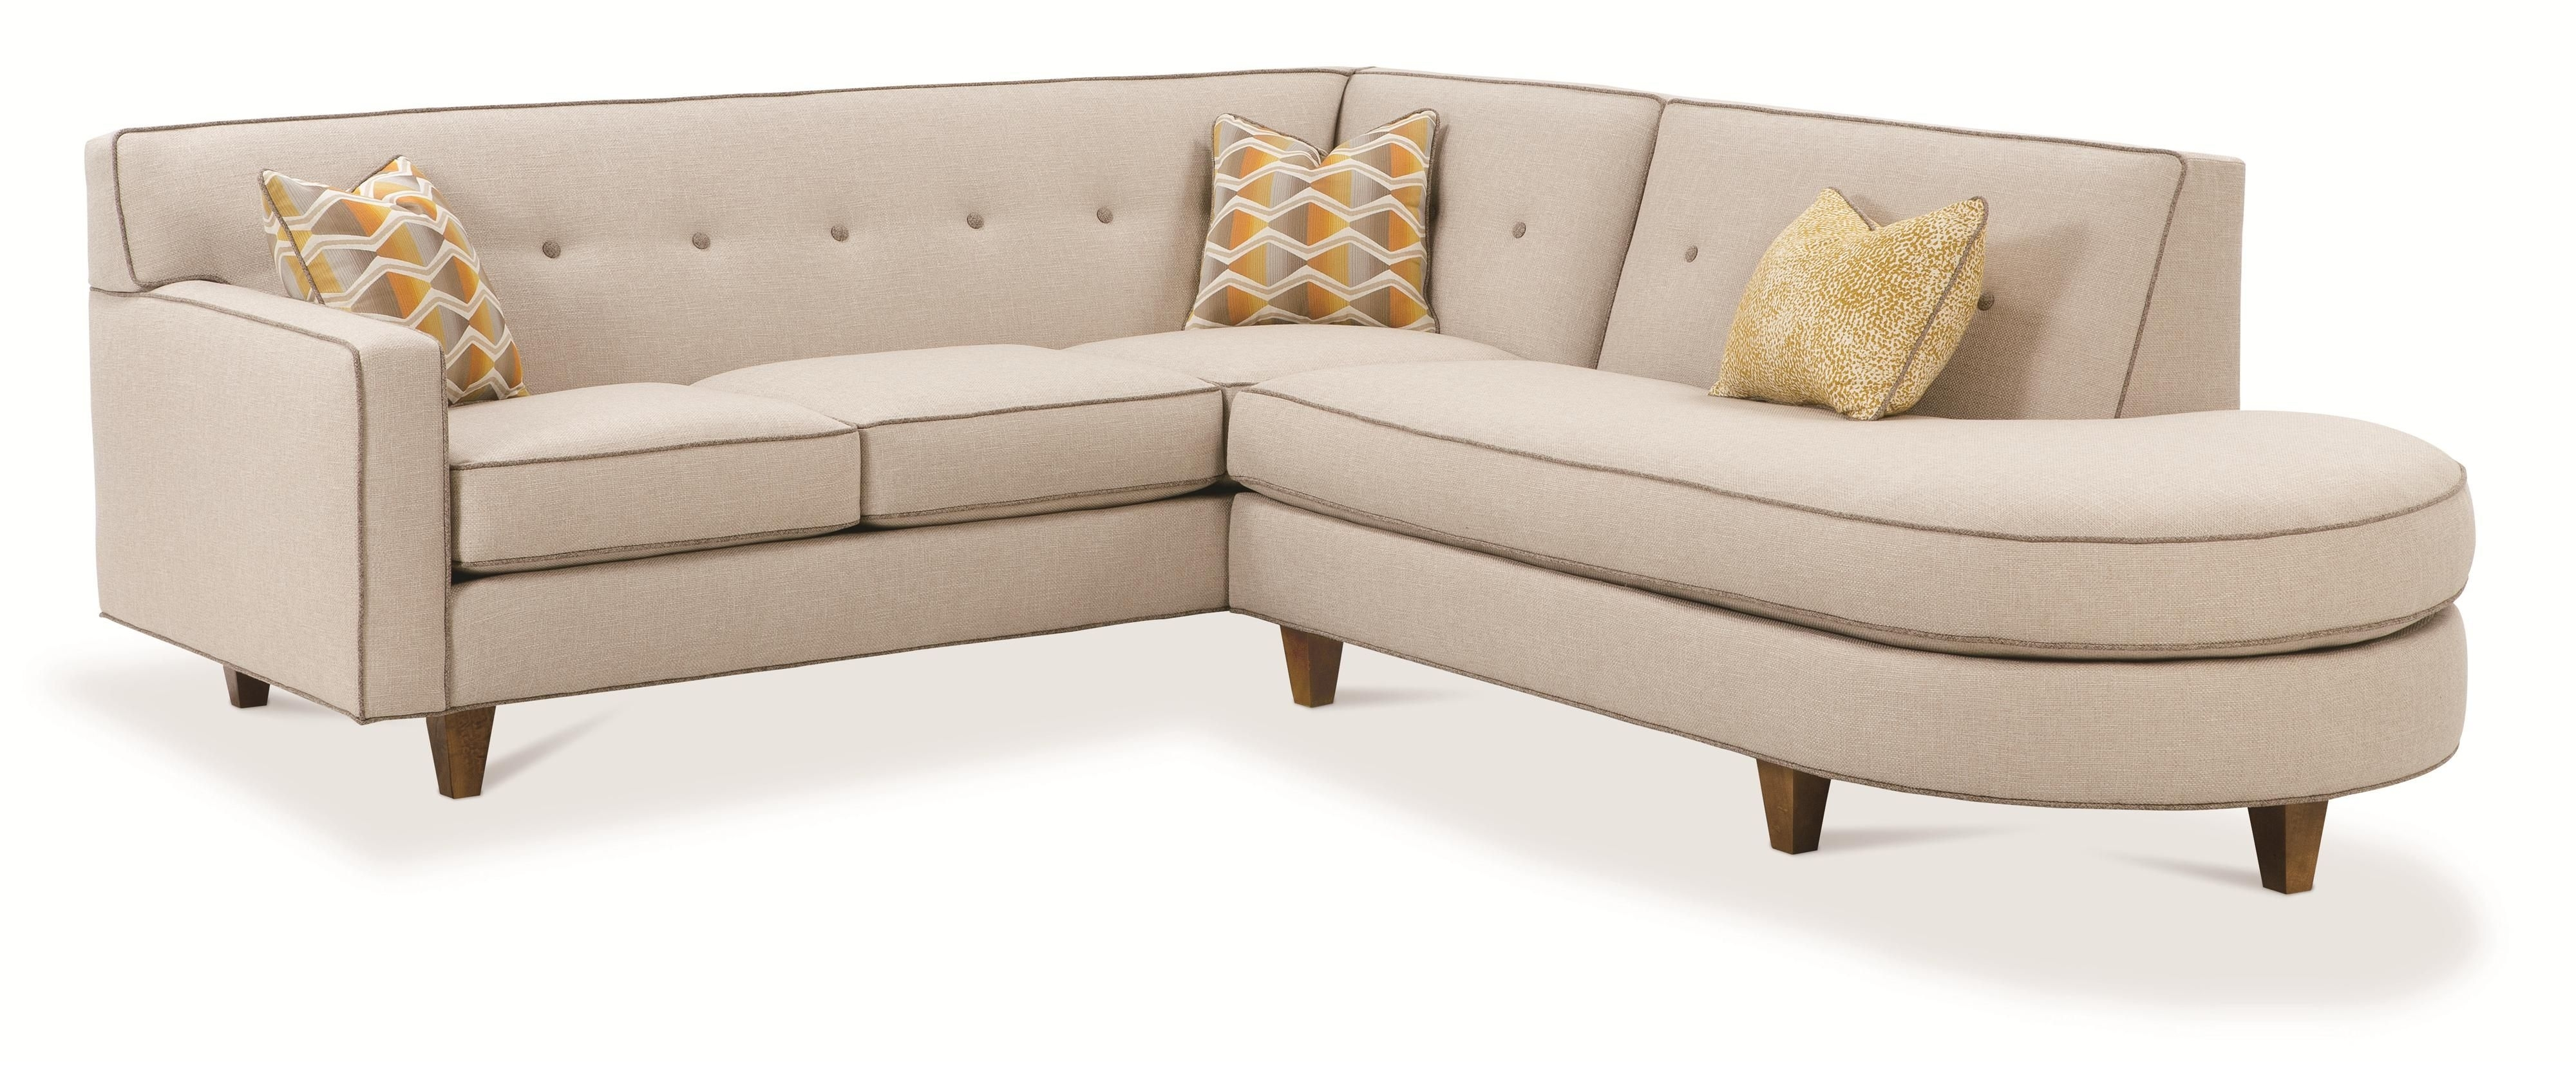 Rowe Dorset Contemporary 2 Piece Sectional Sofa | Baer's Furniture With Naples Fl Sectional Sofas (Image 10 of 10)